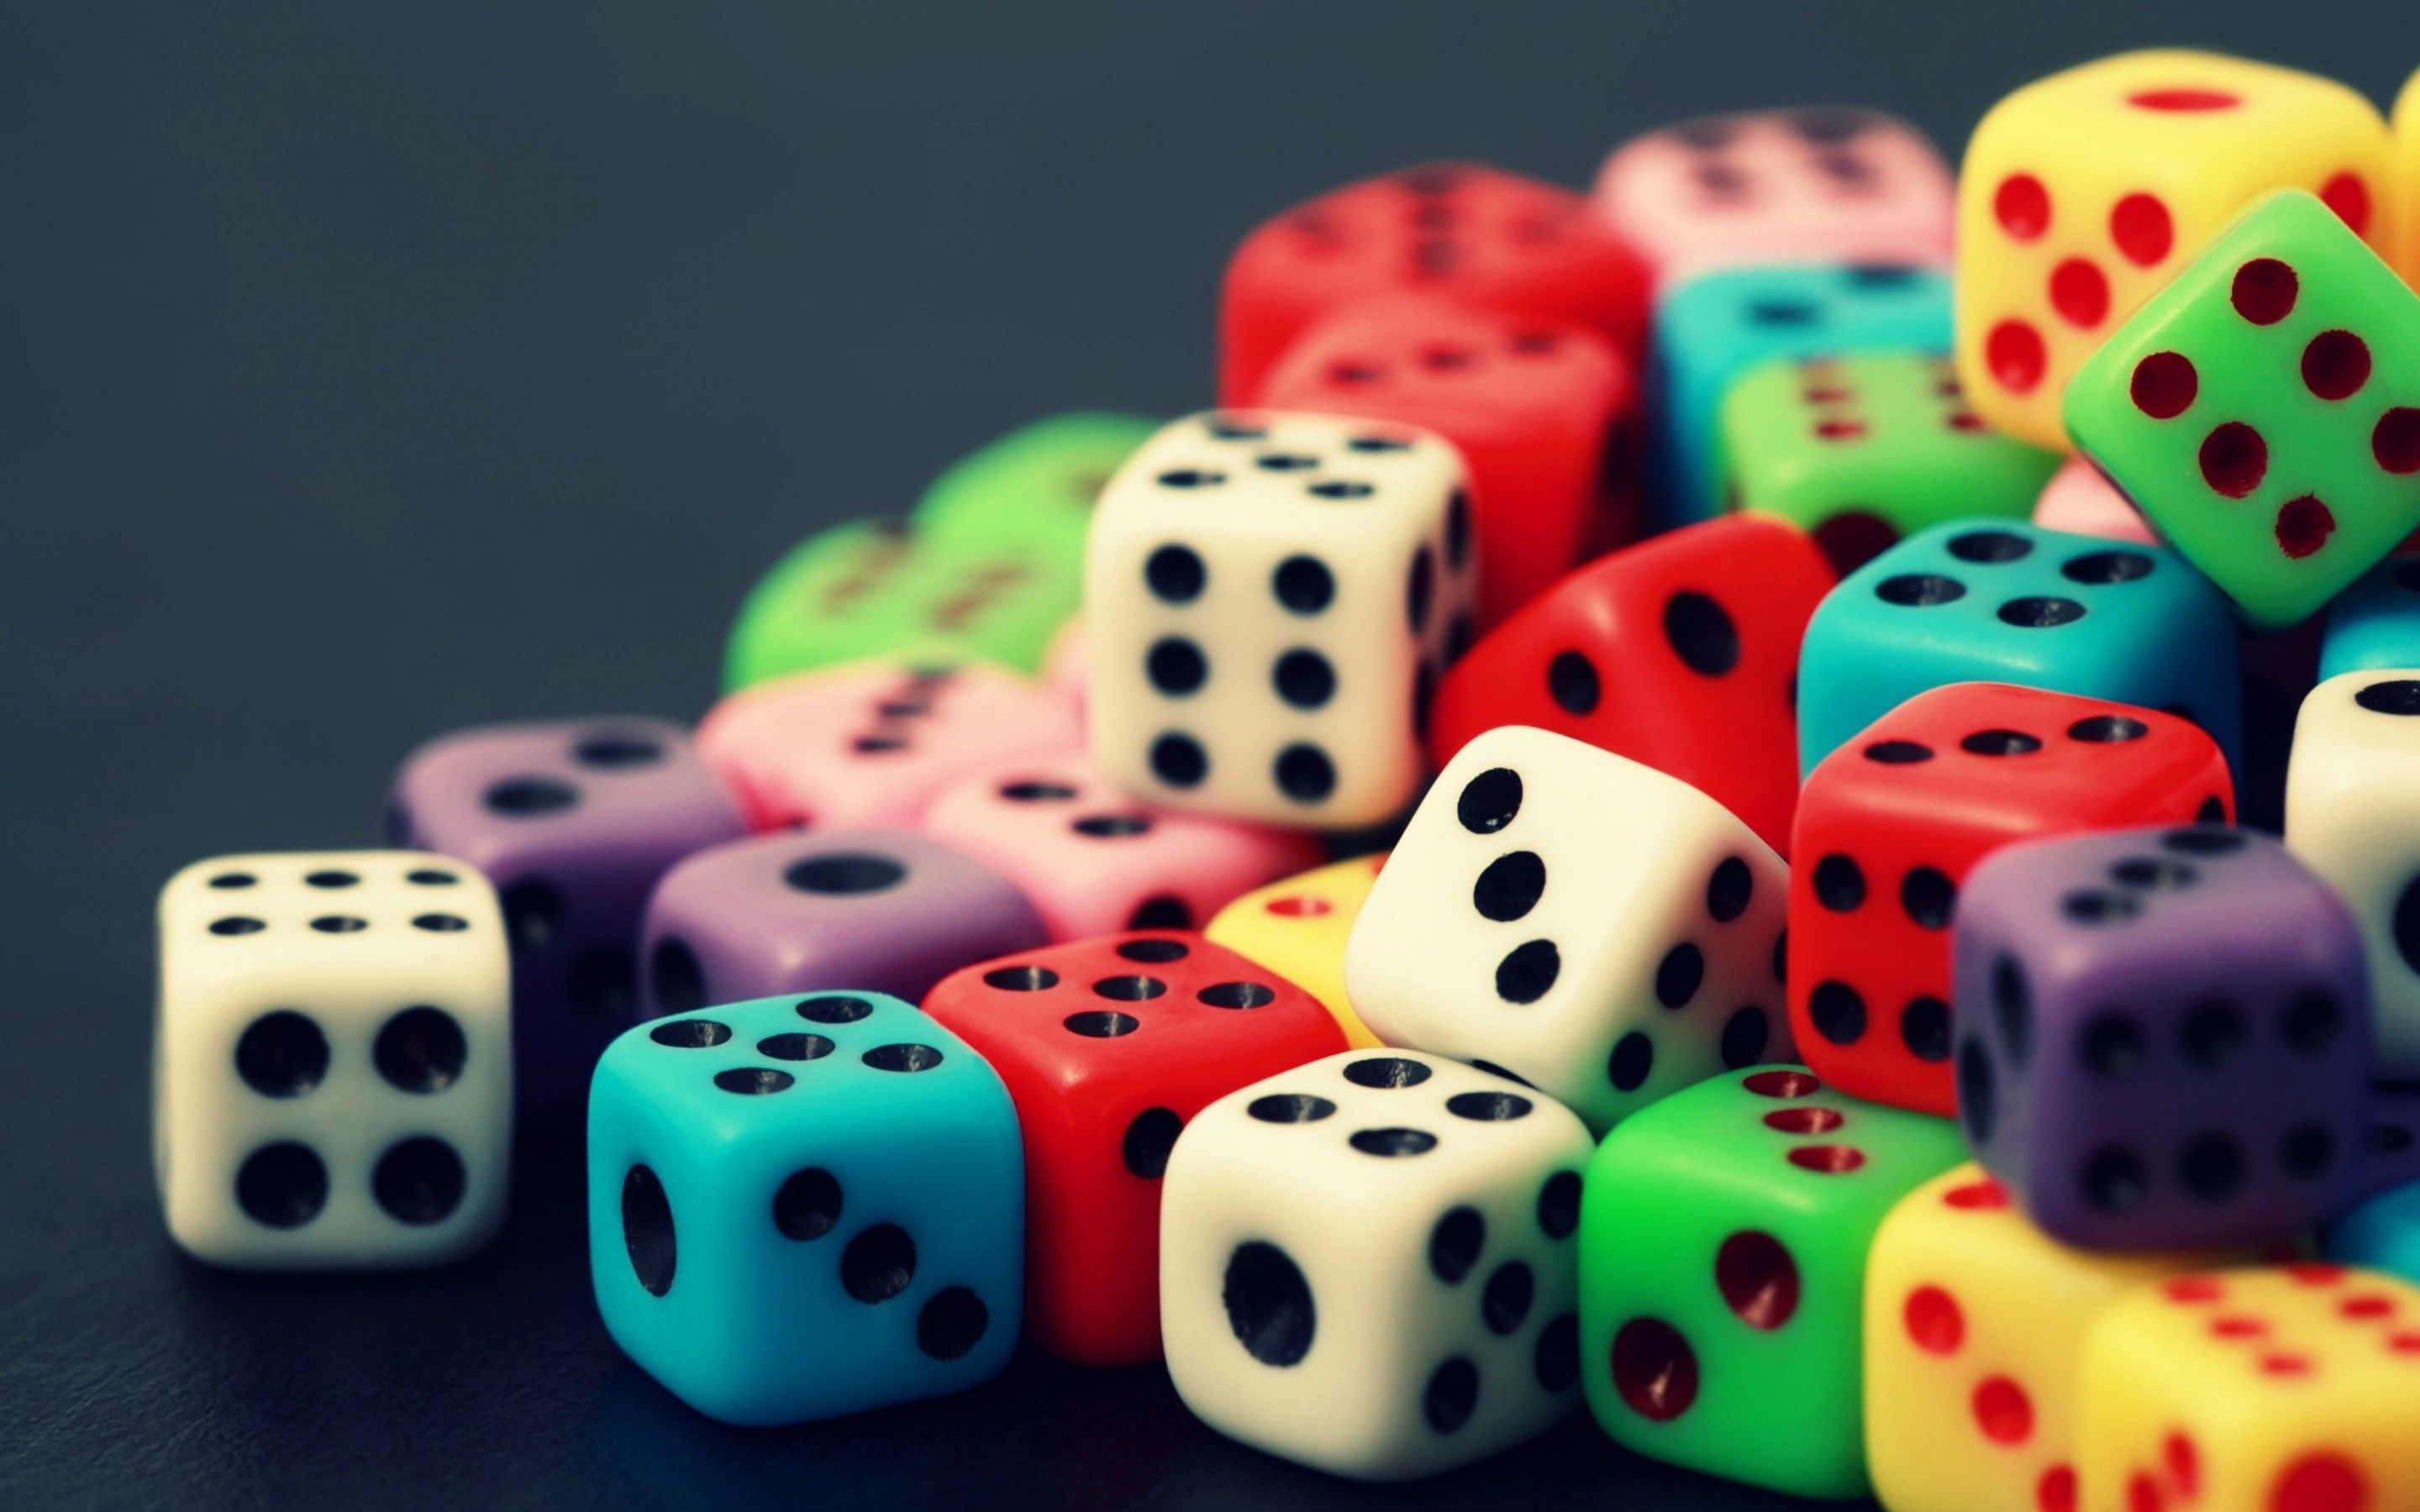 Dice Hd Wallpapers 2880—1800 With Images